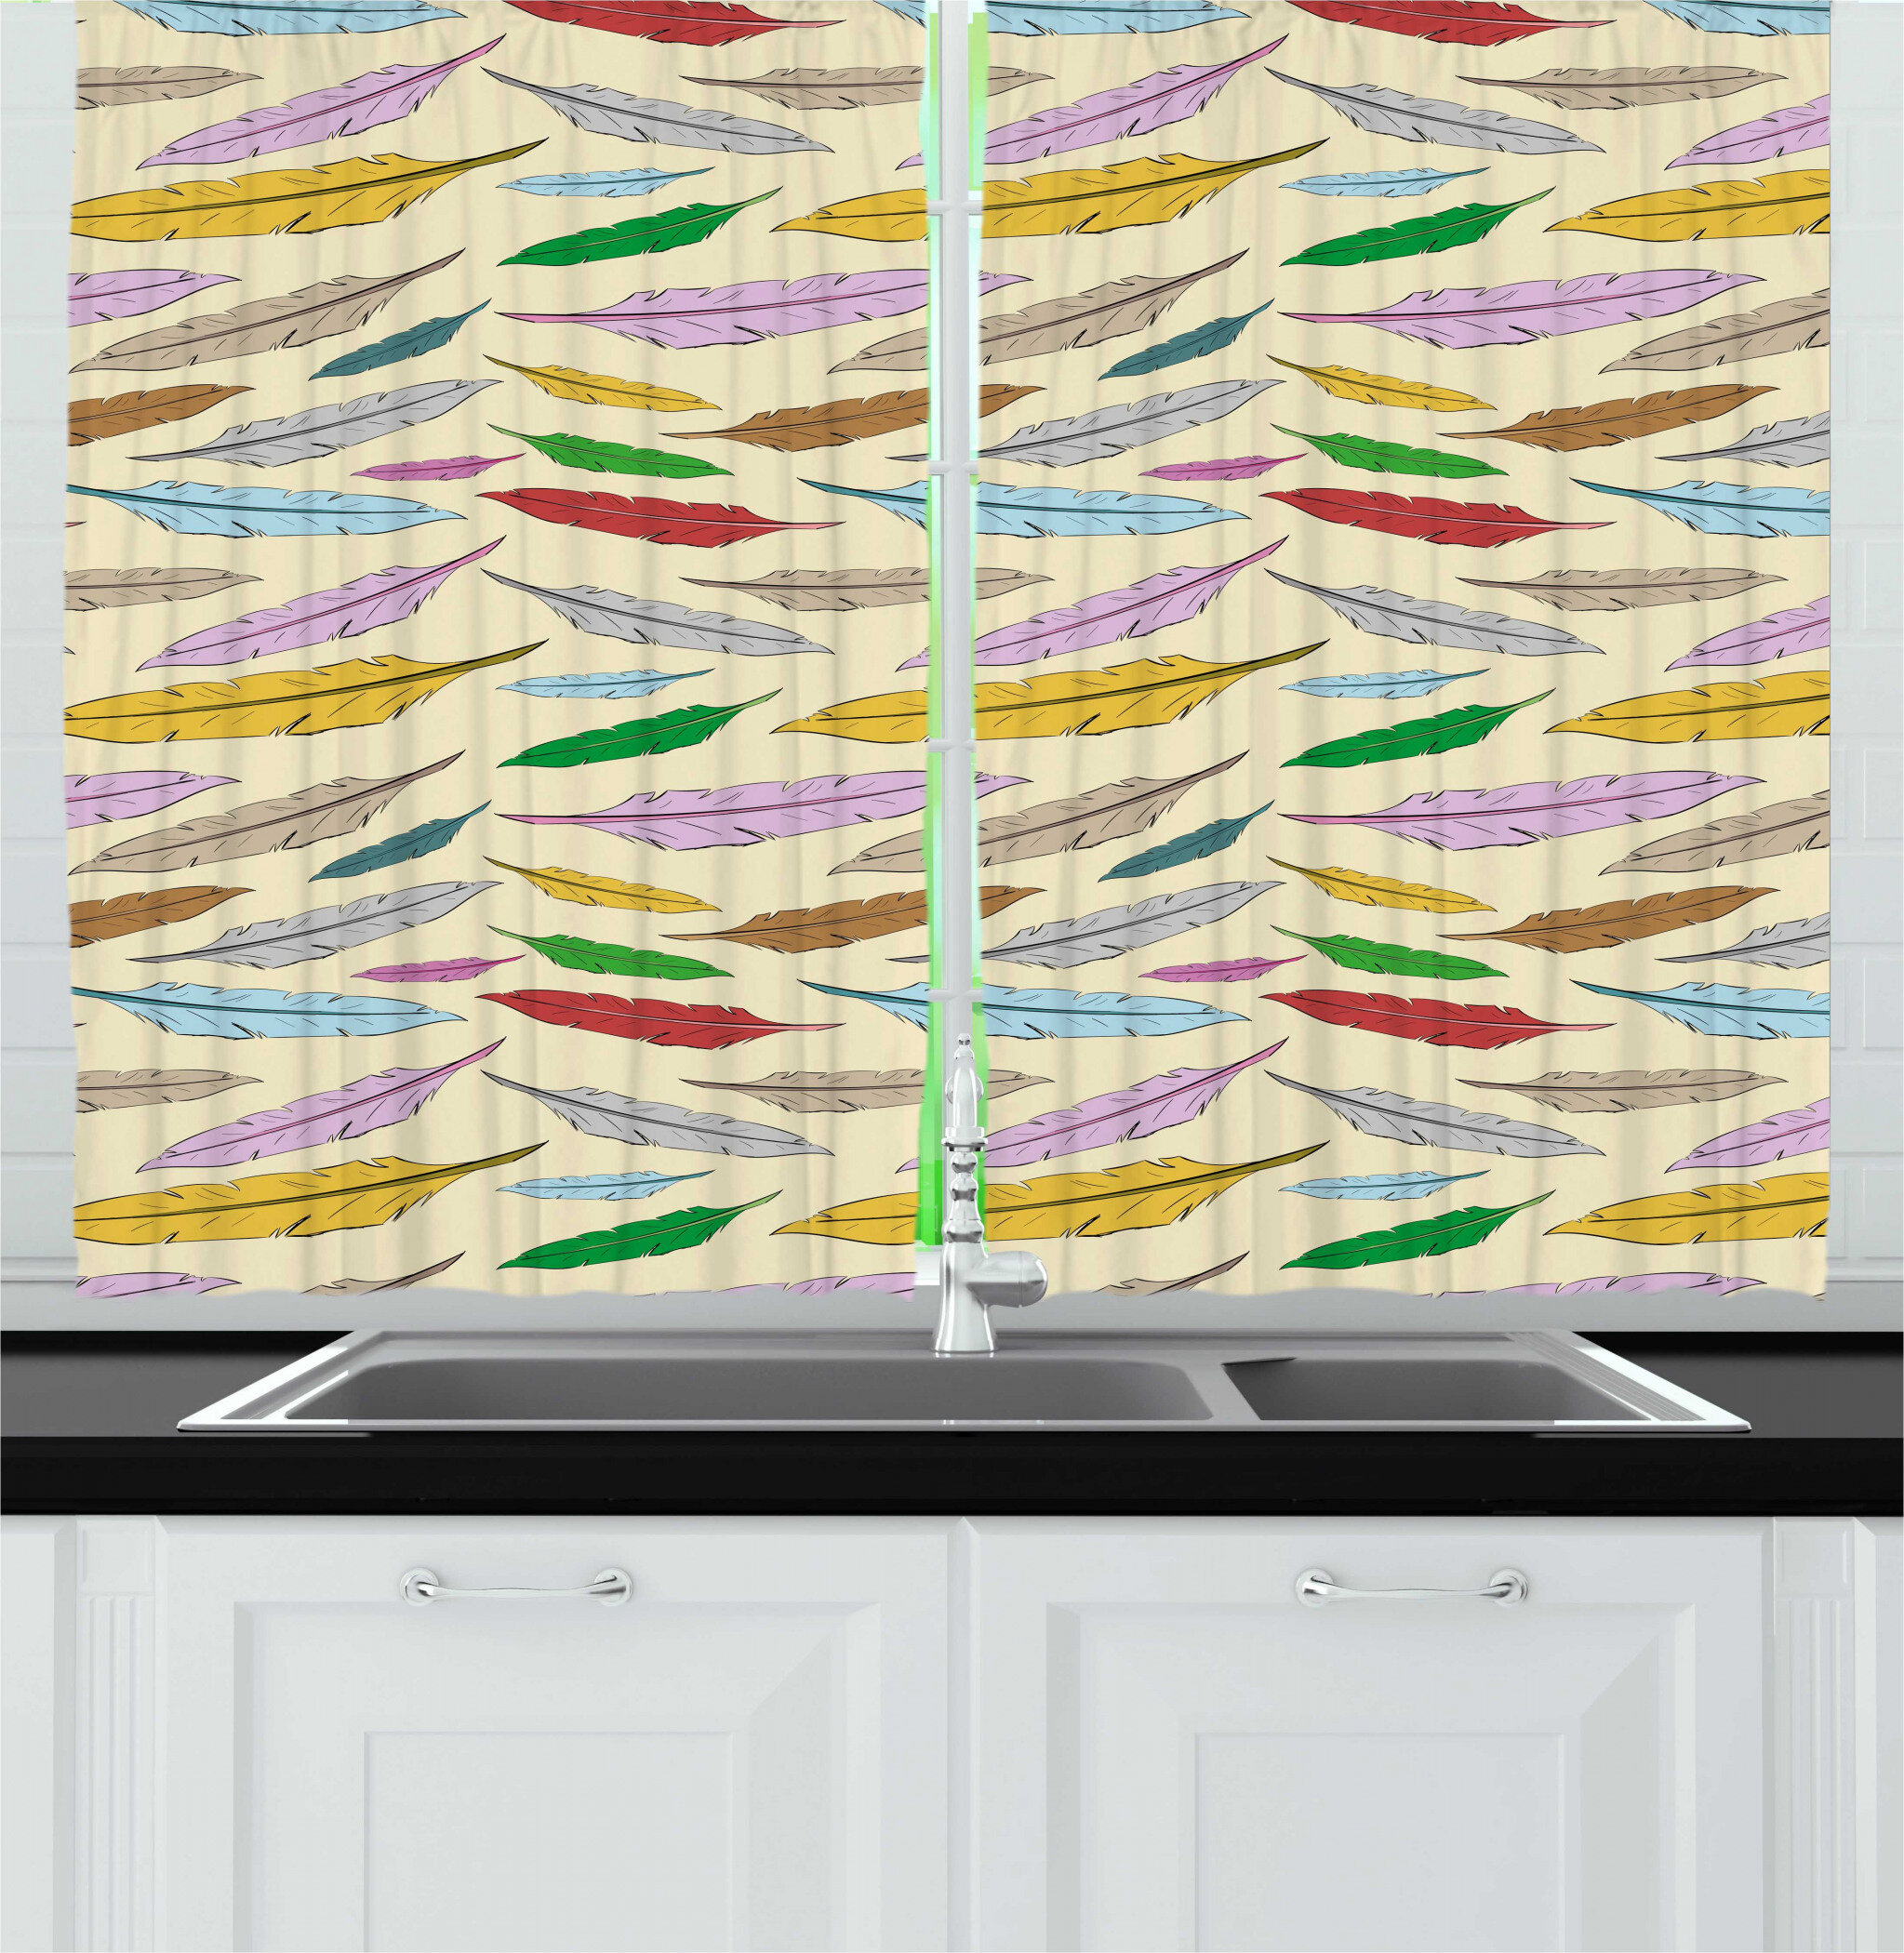 East Urban Home Retro Cartoon Style Colorful Feathers Floating Bohemian Elements Kitchen Curtain Wayfair